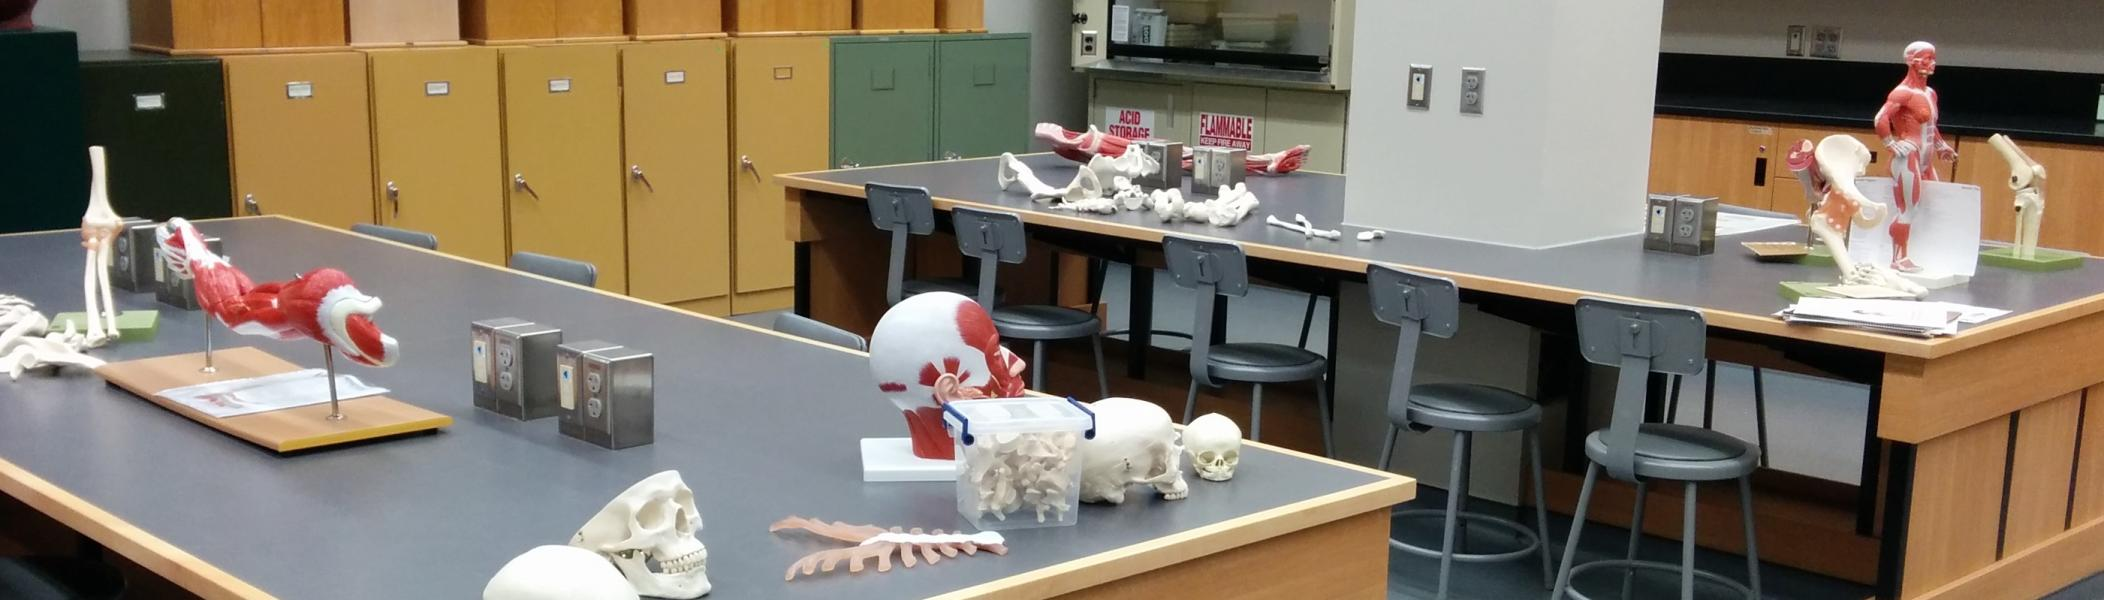 Biology lab showing 2 lab benches with an assortment of human bone replicas, joint models, and a small human form showing muscle groups